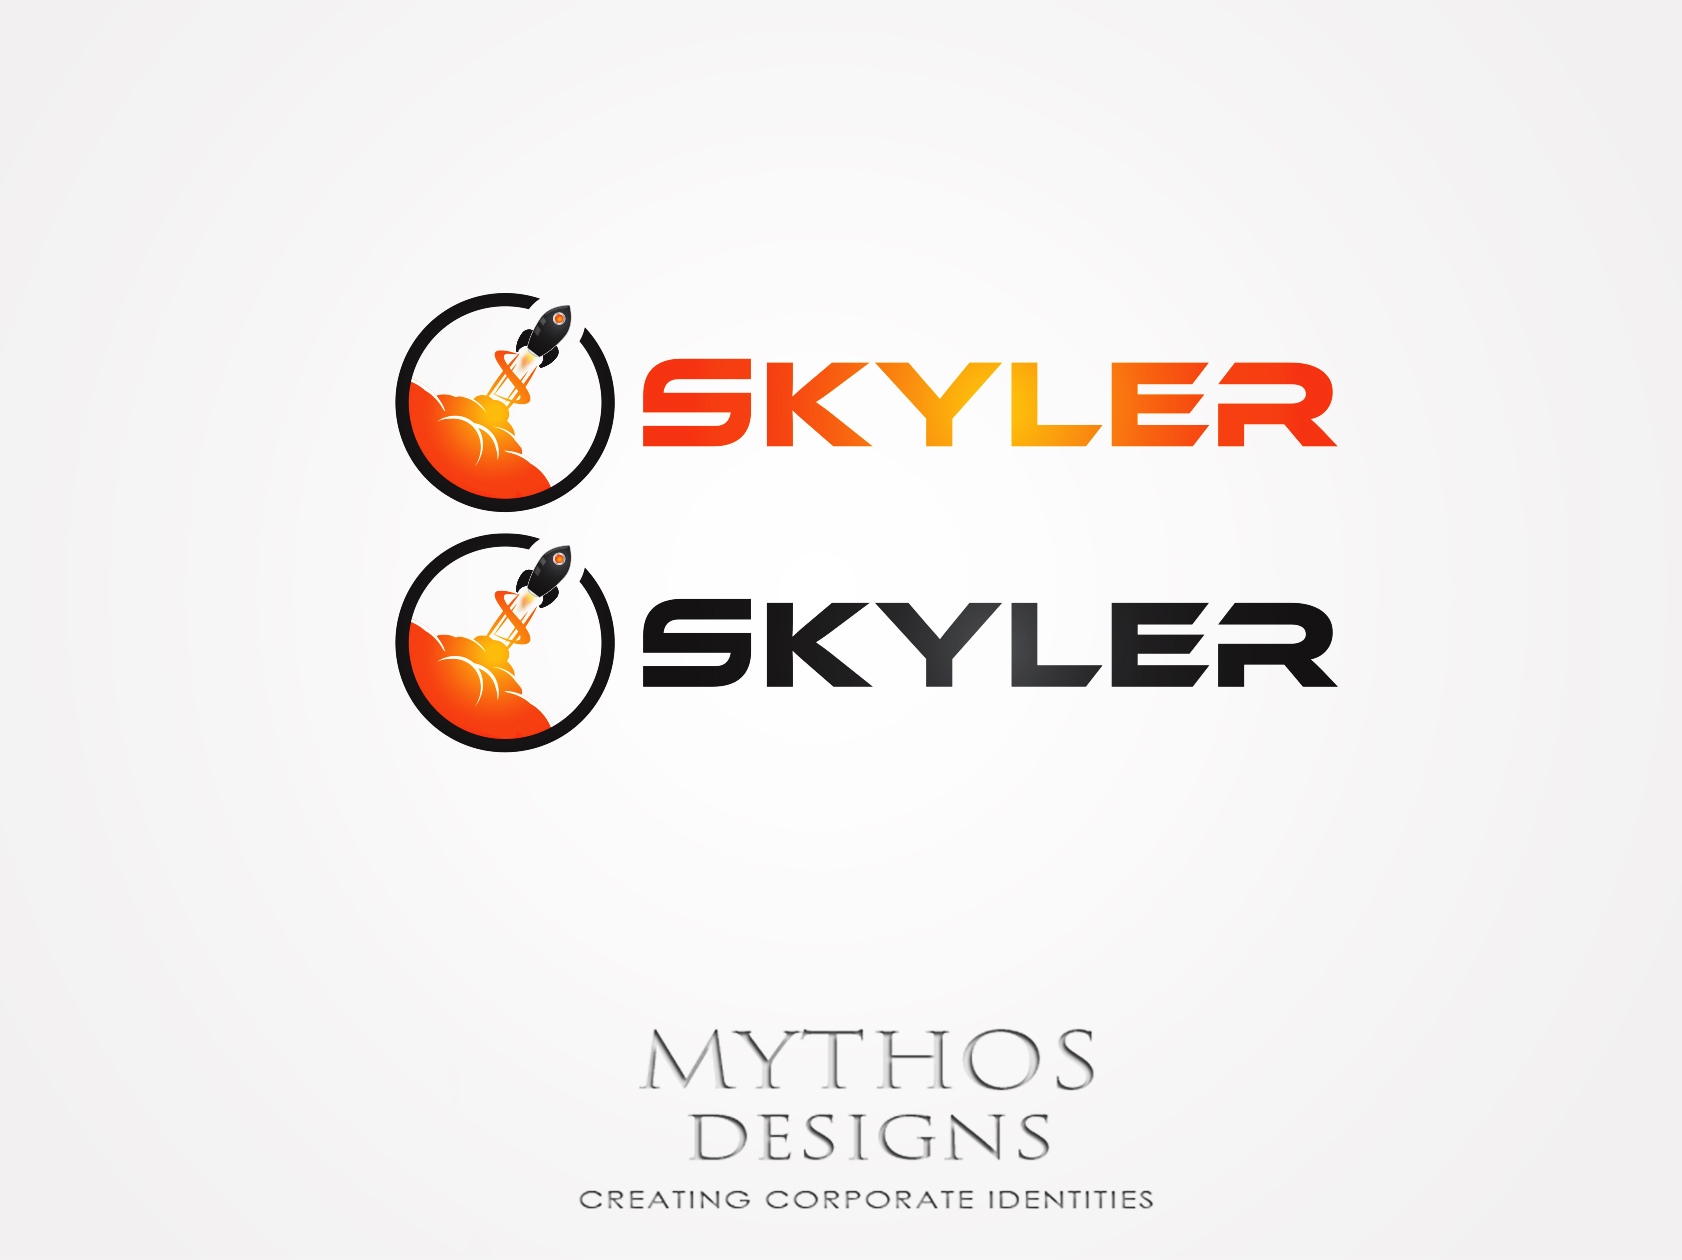 Logo Design by Mythos Designs - Entry No. 80 in the Logo Design Contest Artistic Logo Design for Skyler.Asia.